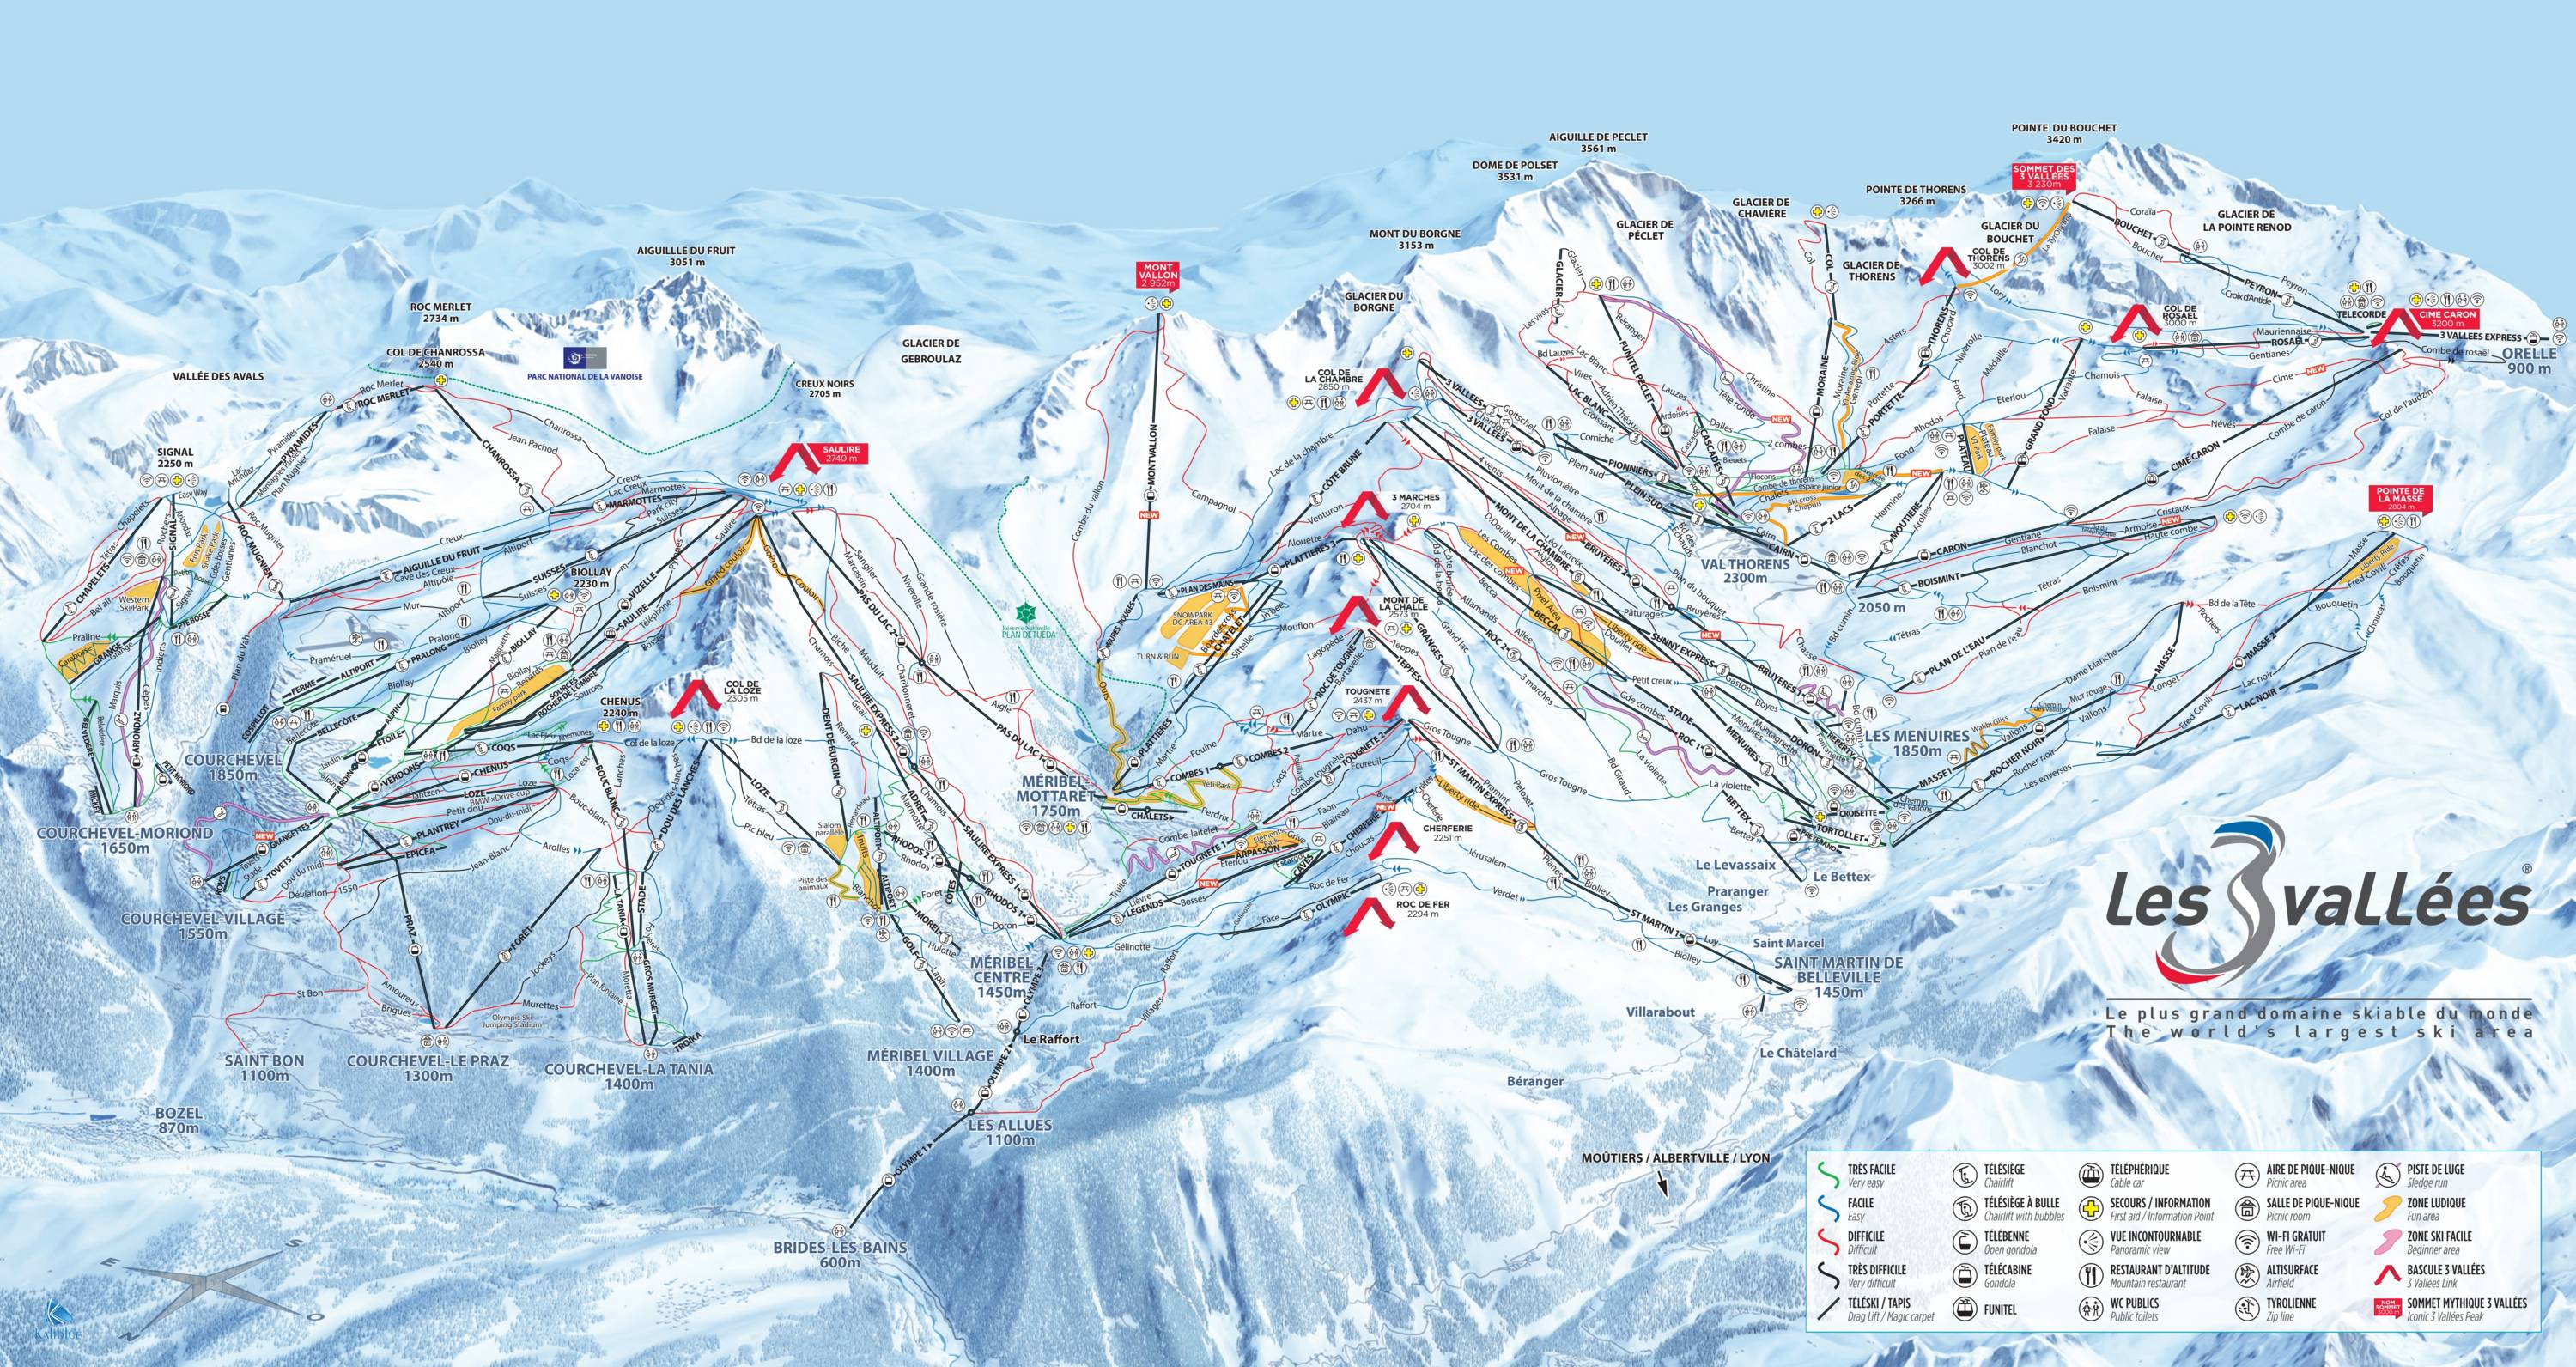 Map 8f France.Trail Map Les 3 Vallees Val Thorens Les Menuires Meribel Courchevel